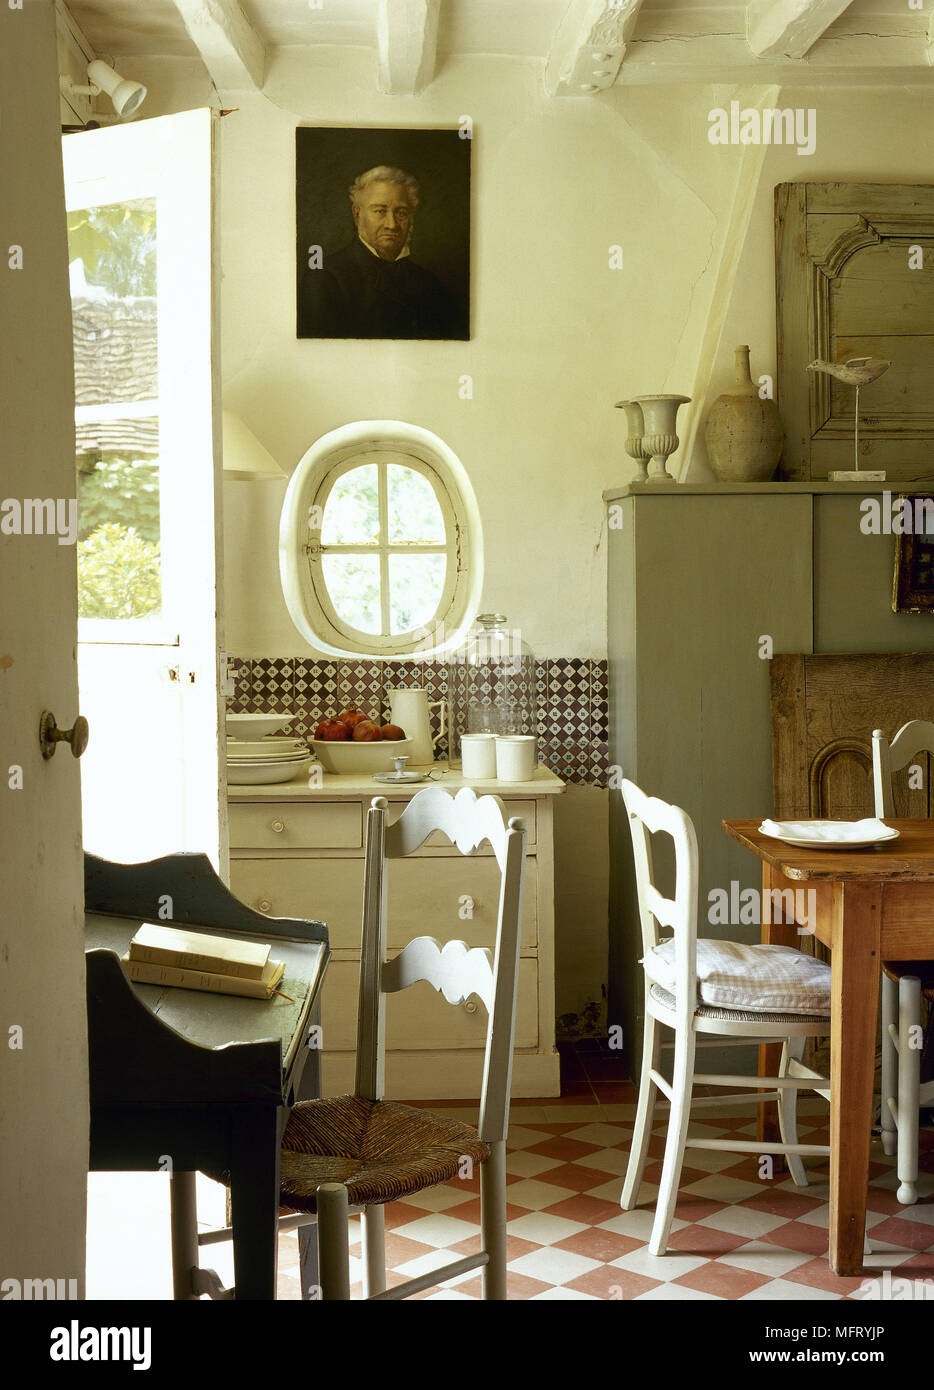 Astounding French Country Kitchen Detail Dining Table Writing Desk And Unemploymentrelief Wooden Chair Designs For Living Room Unemploymentrelieforg